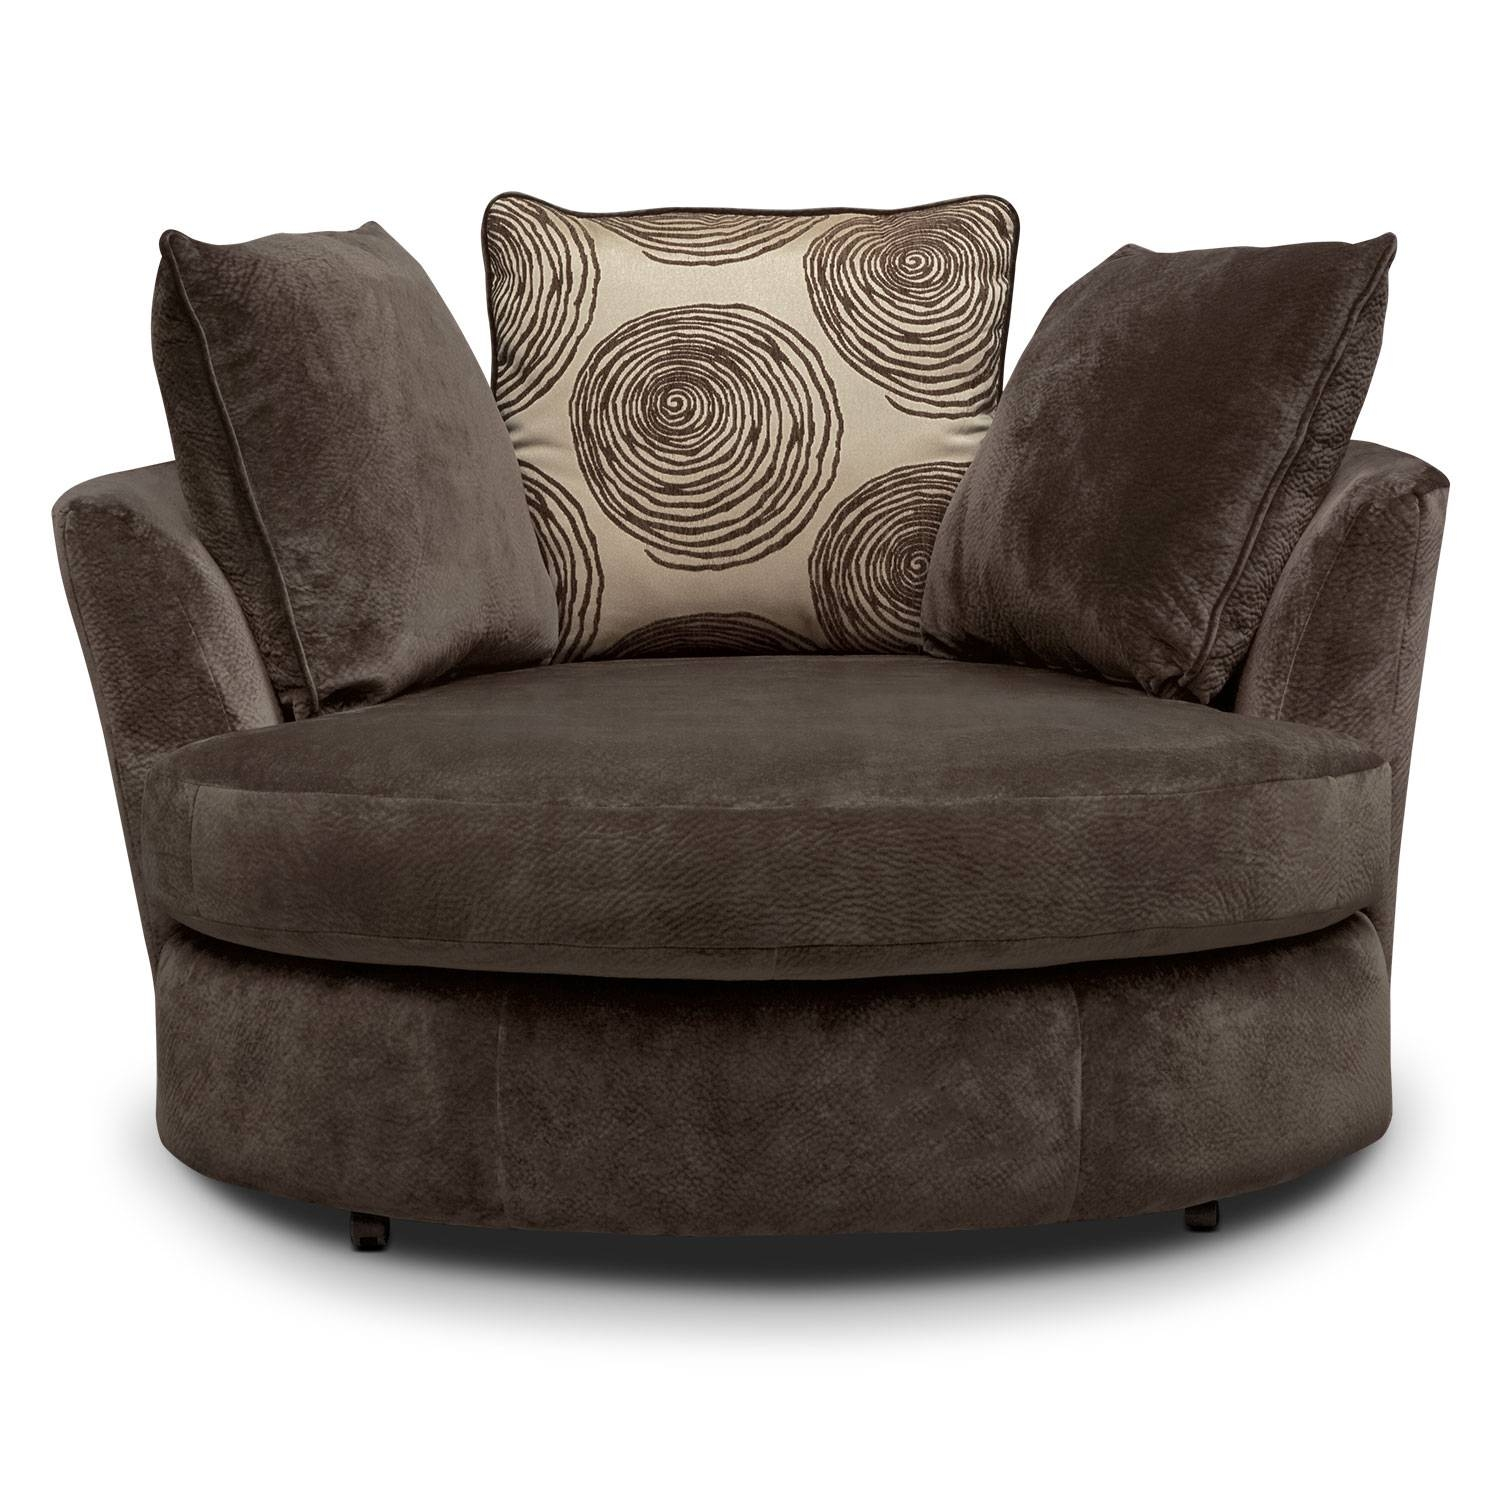 Cordelle Swivel Chair - Chocolate | Value City Furniture with regard to Swivel Sofa Chairs (Image 8 of 30)